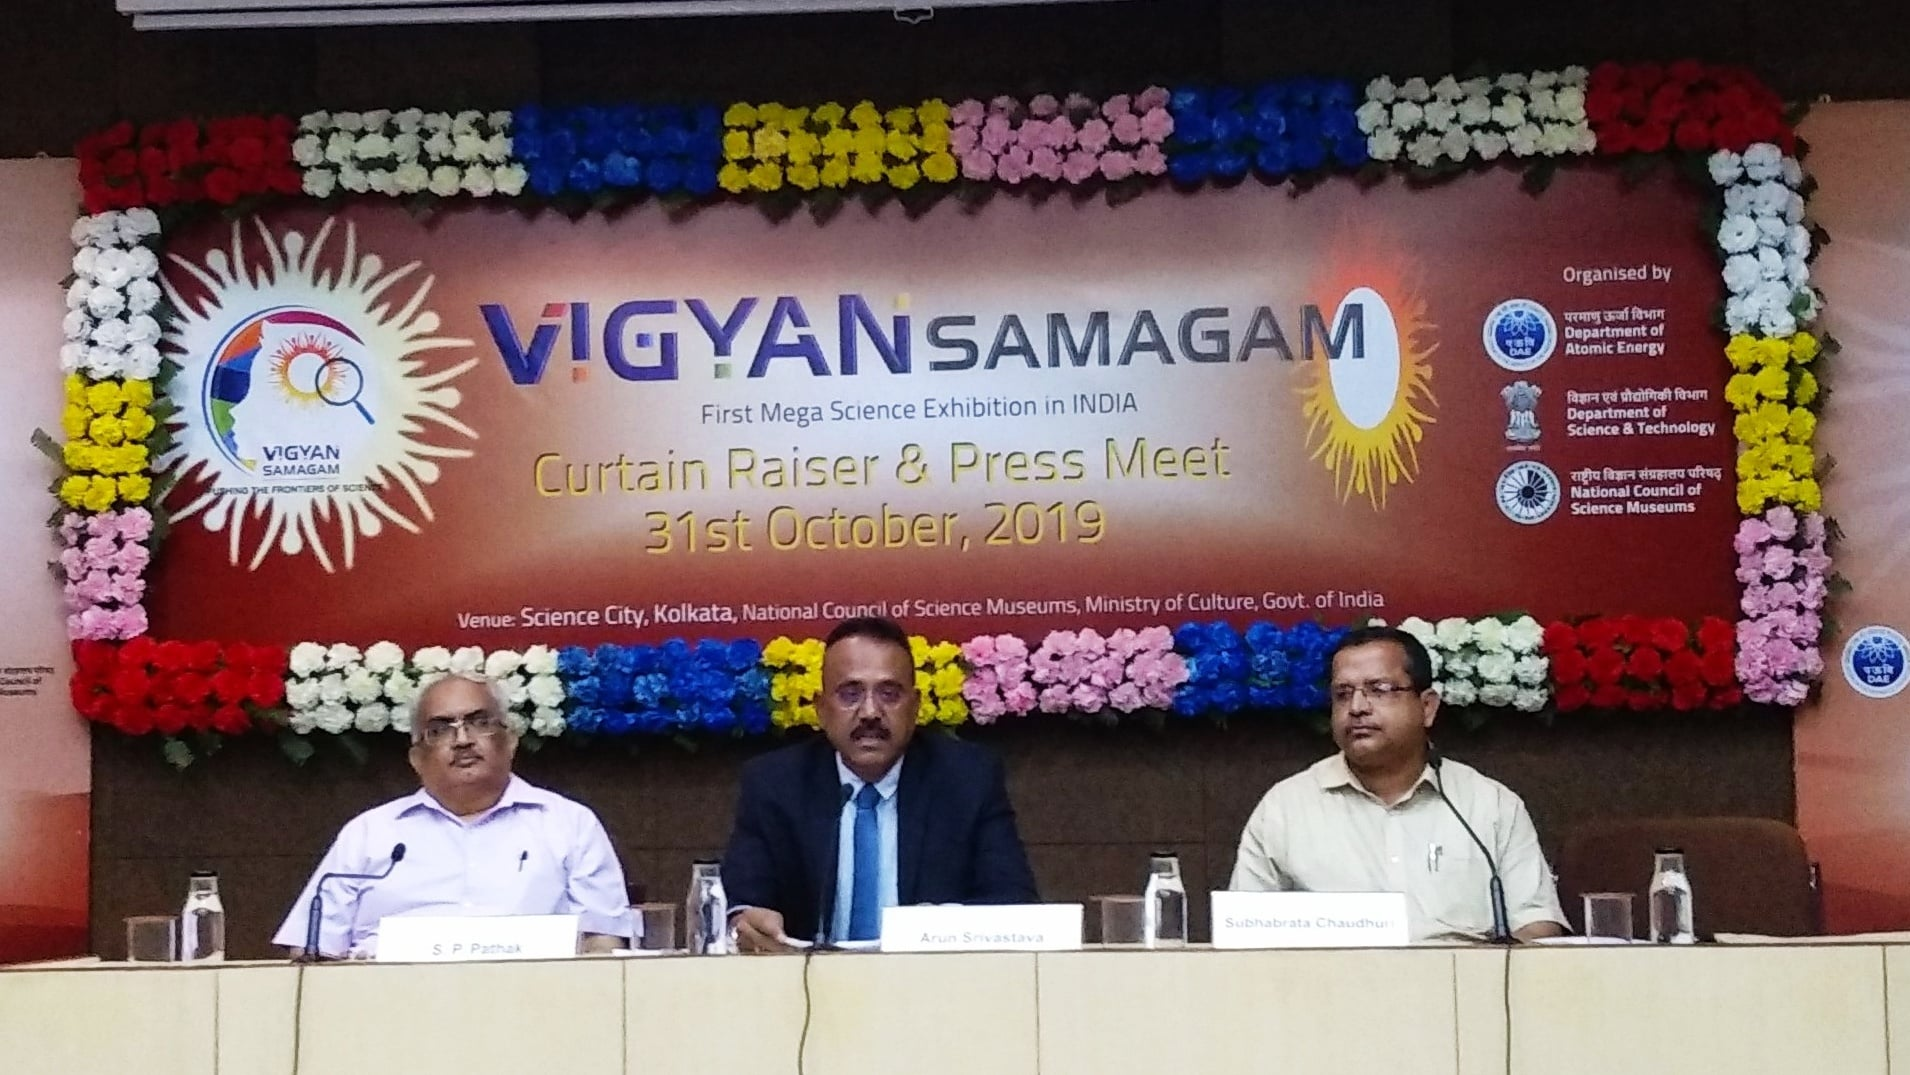 global science exhibition vijayan samagam